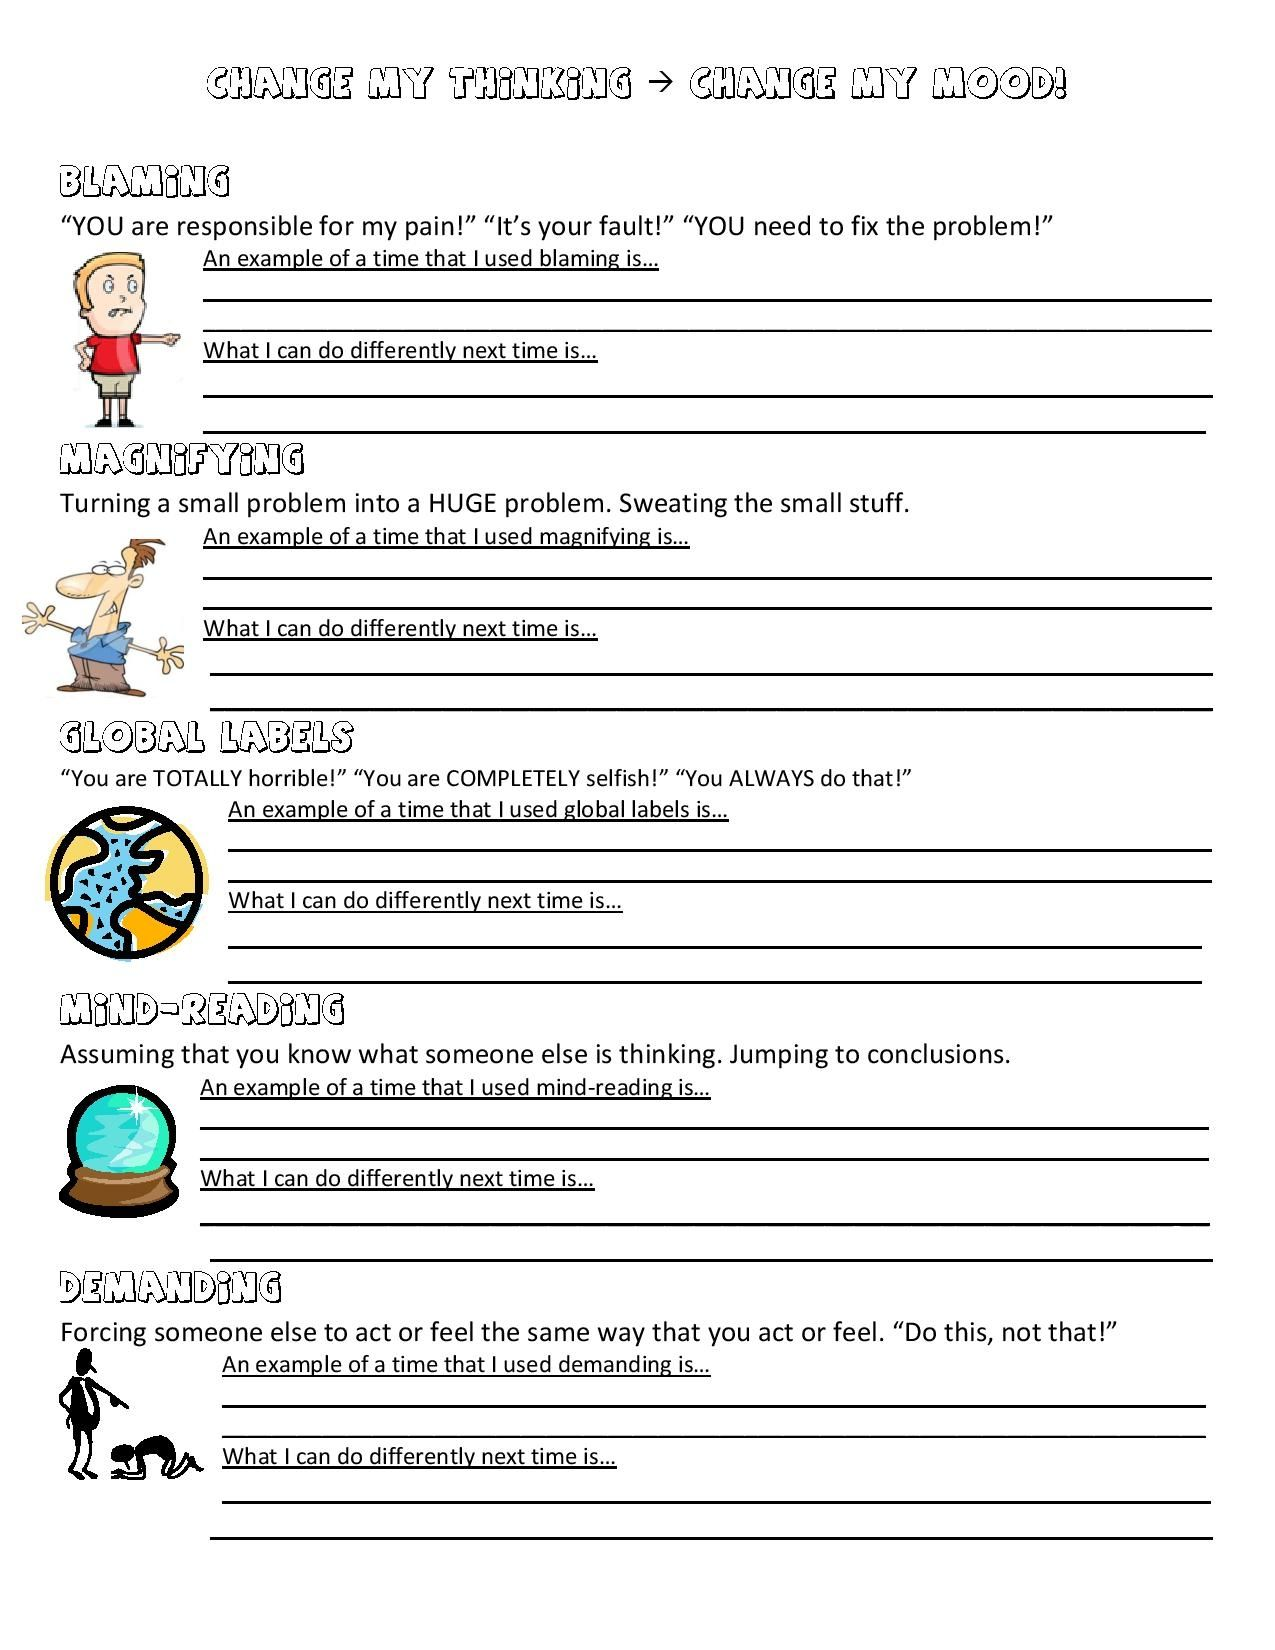 Worksheet Coping With Anger Worksheets 1000 images about anger management on pinterest anxiety activities and for kids